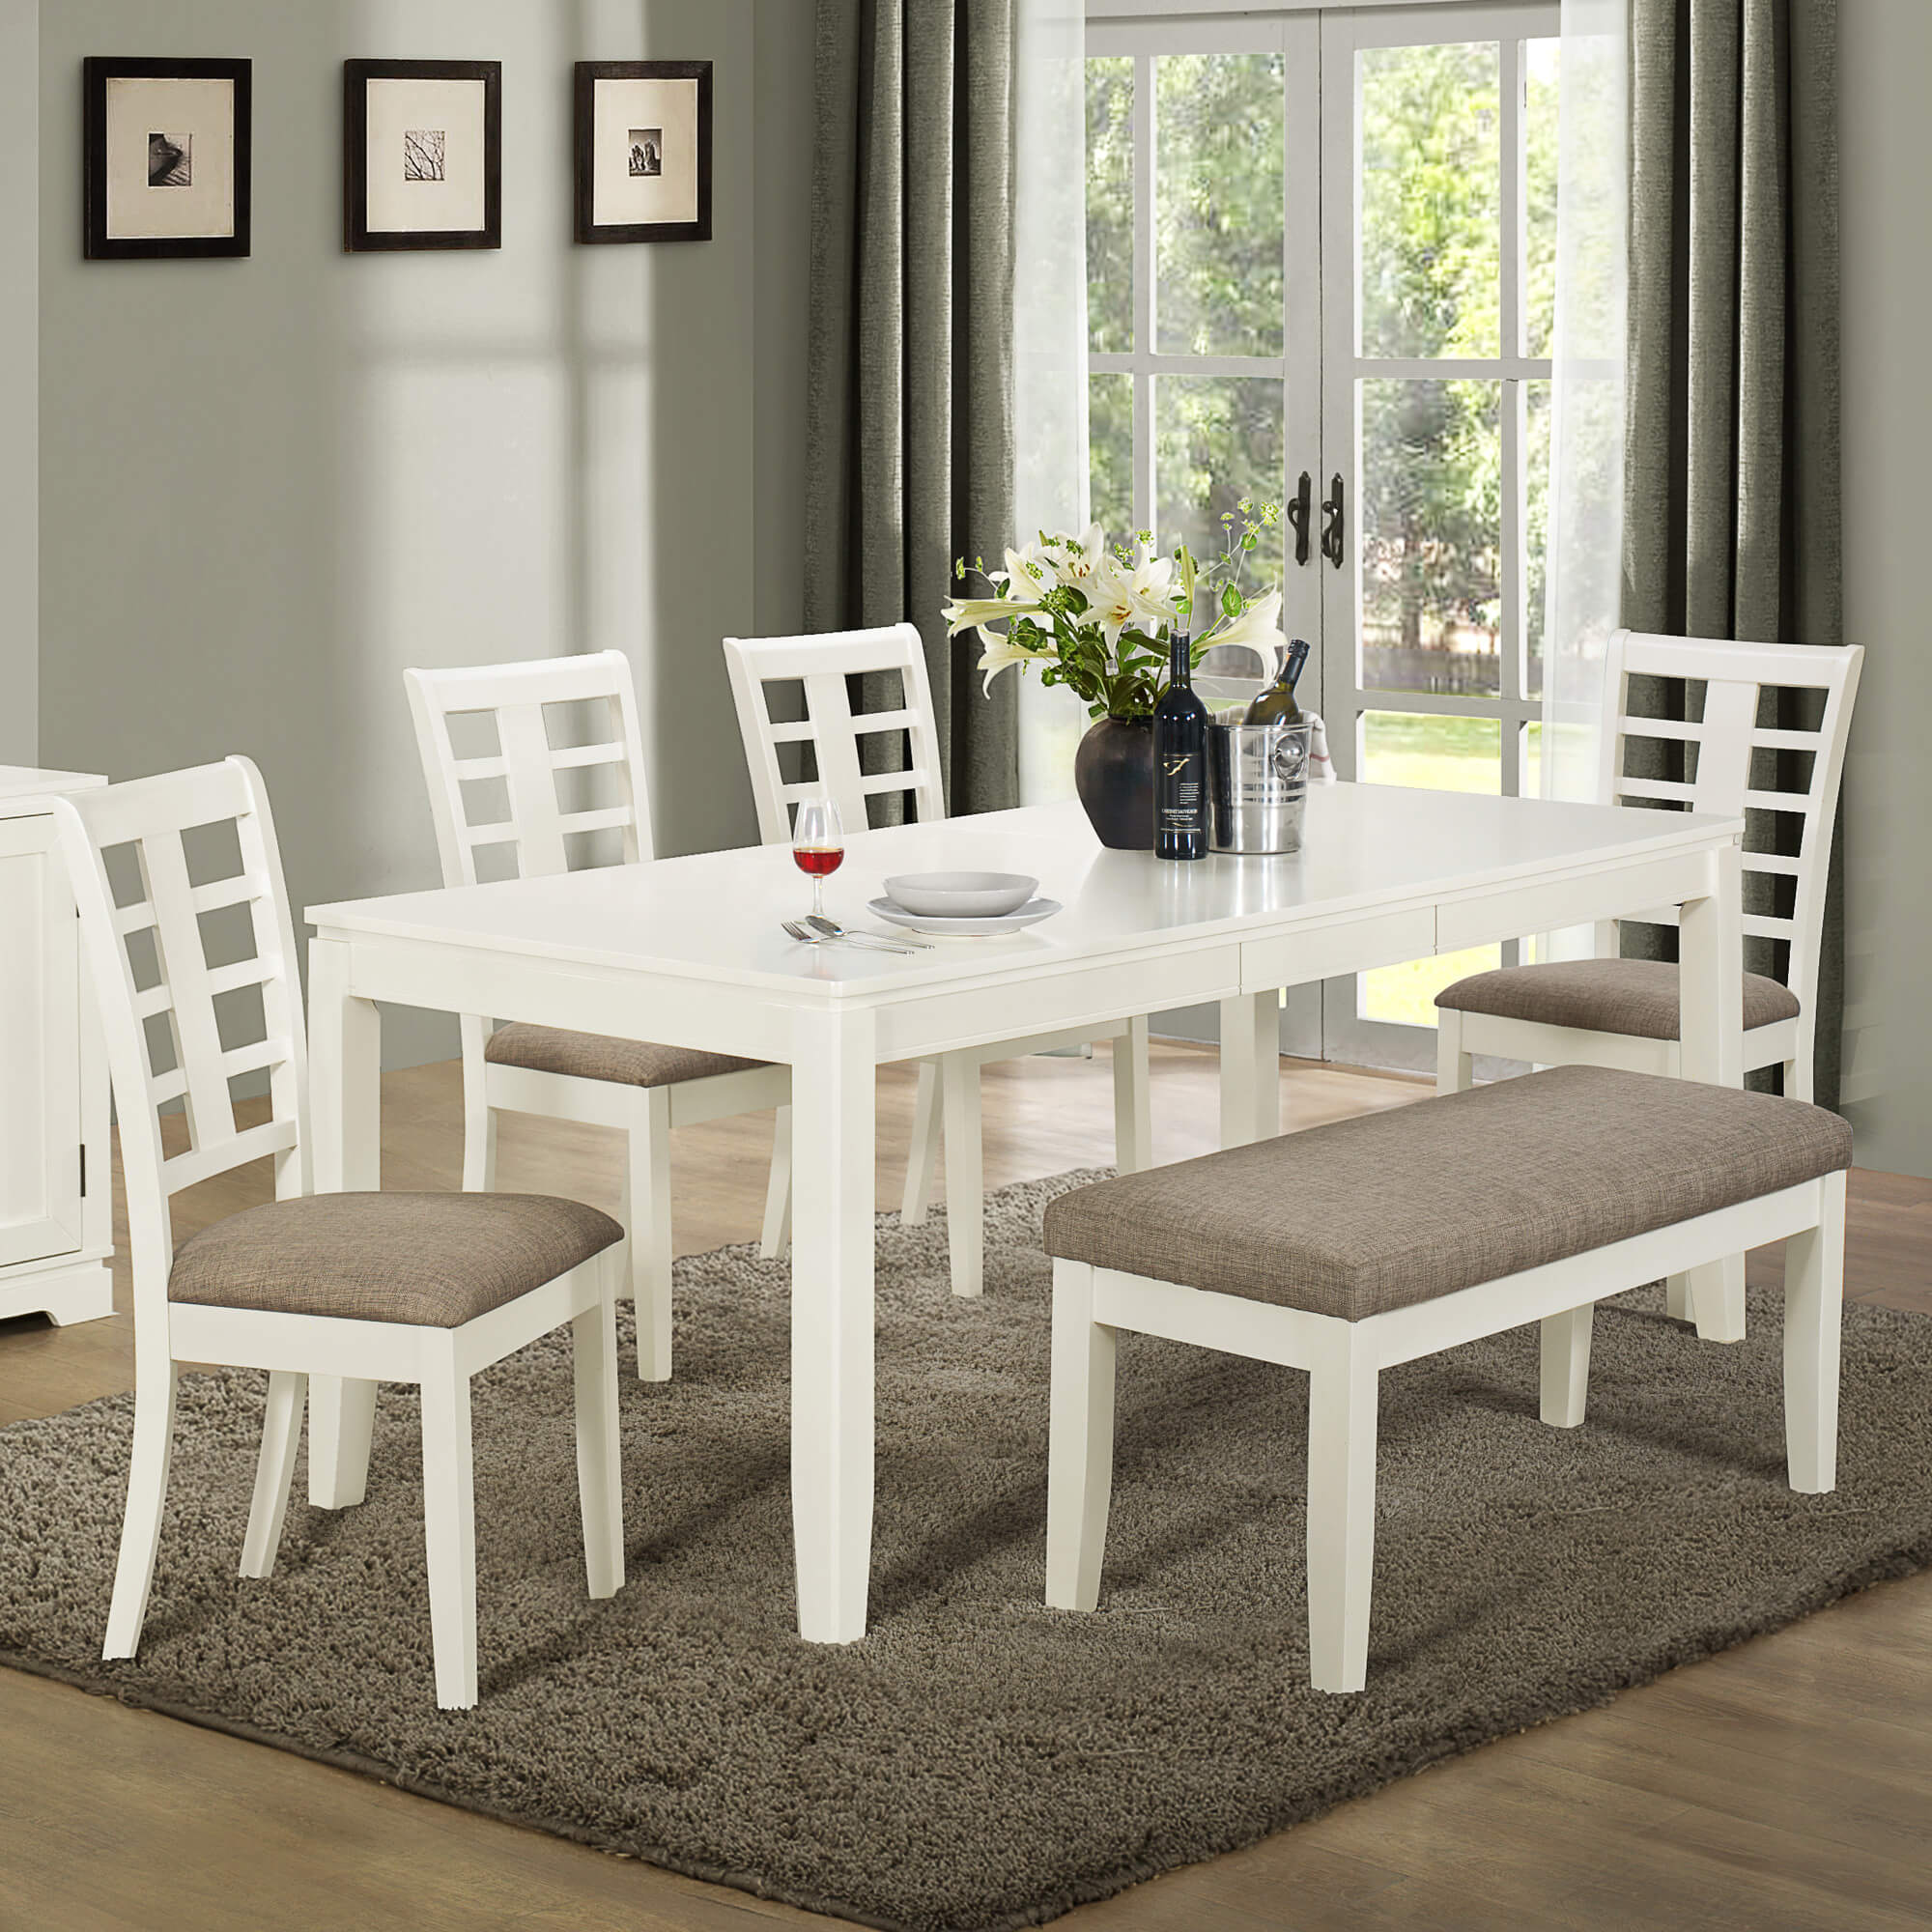 with of dining best room tables chairs and wood luxury solid table set bench